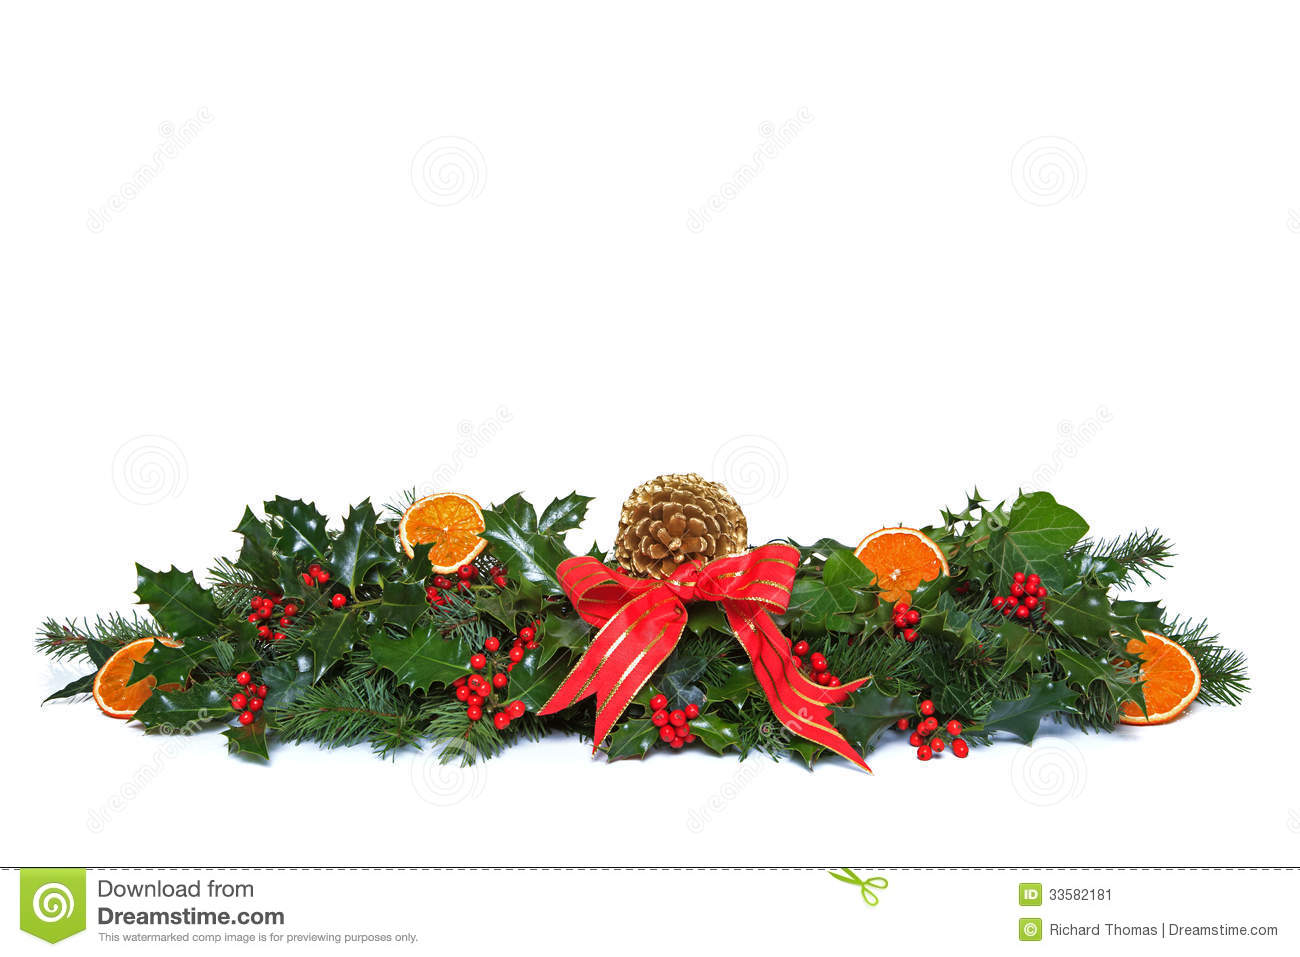 Traditional christmas garland made from fresh holly with red berries